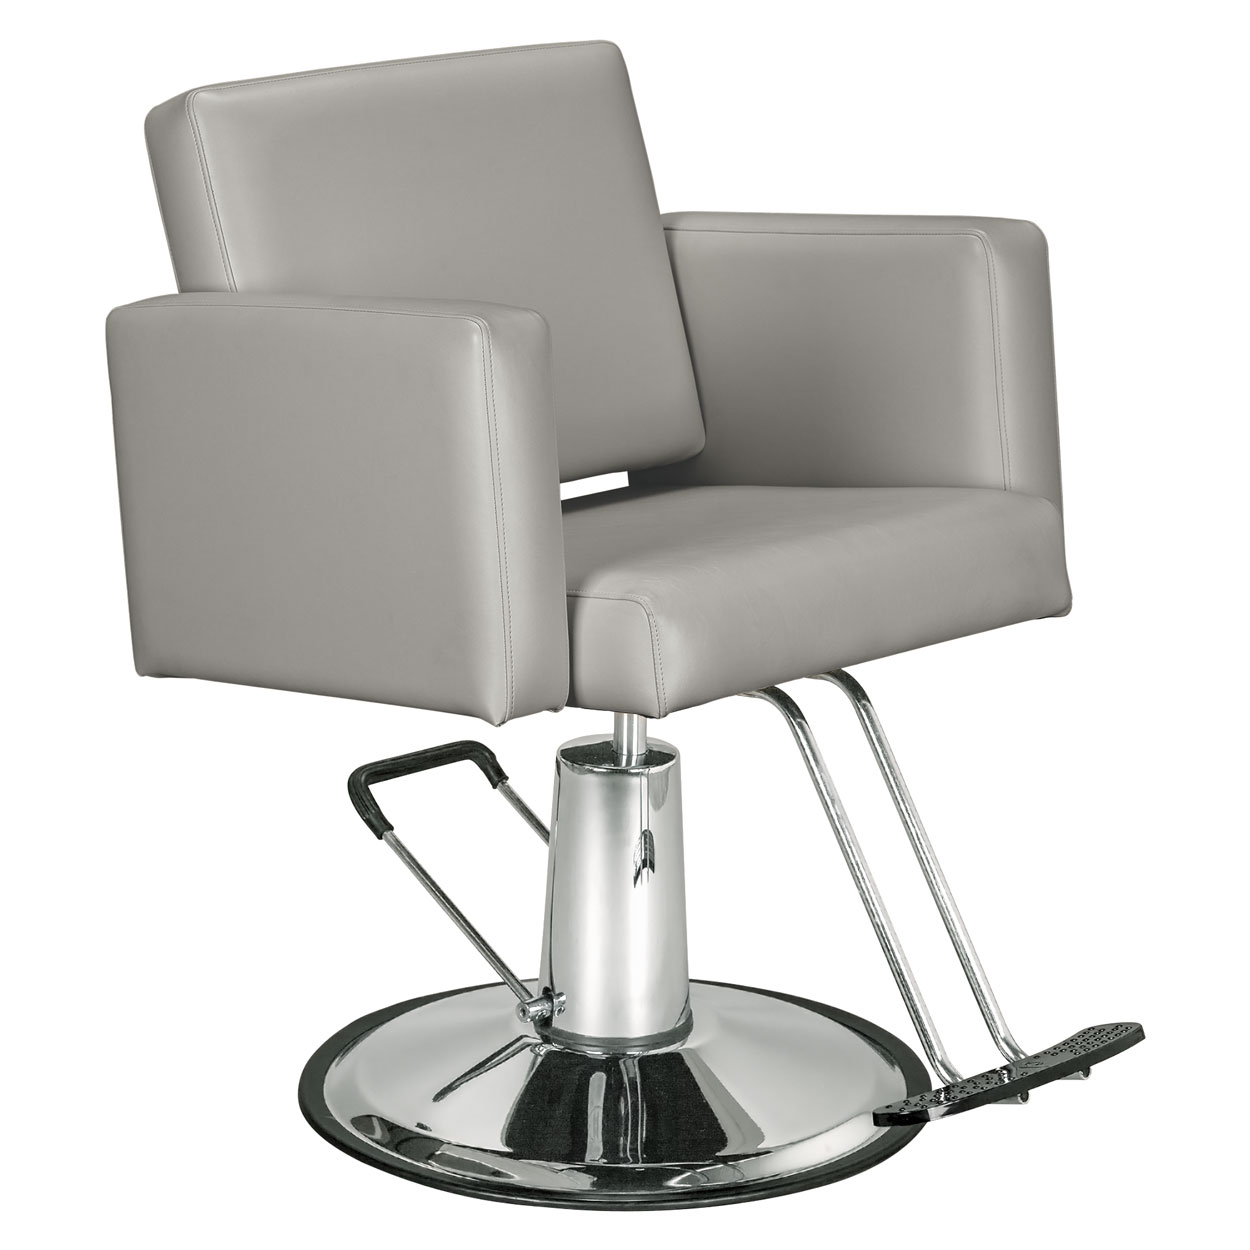 Pibbs 3406 Cosmo Hair Stylist Chair  main product image